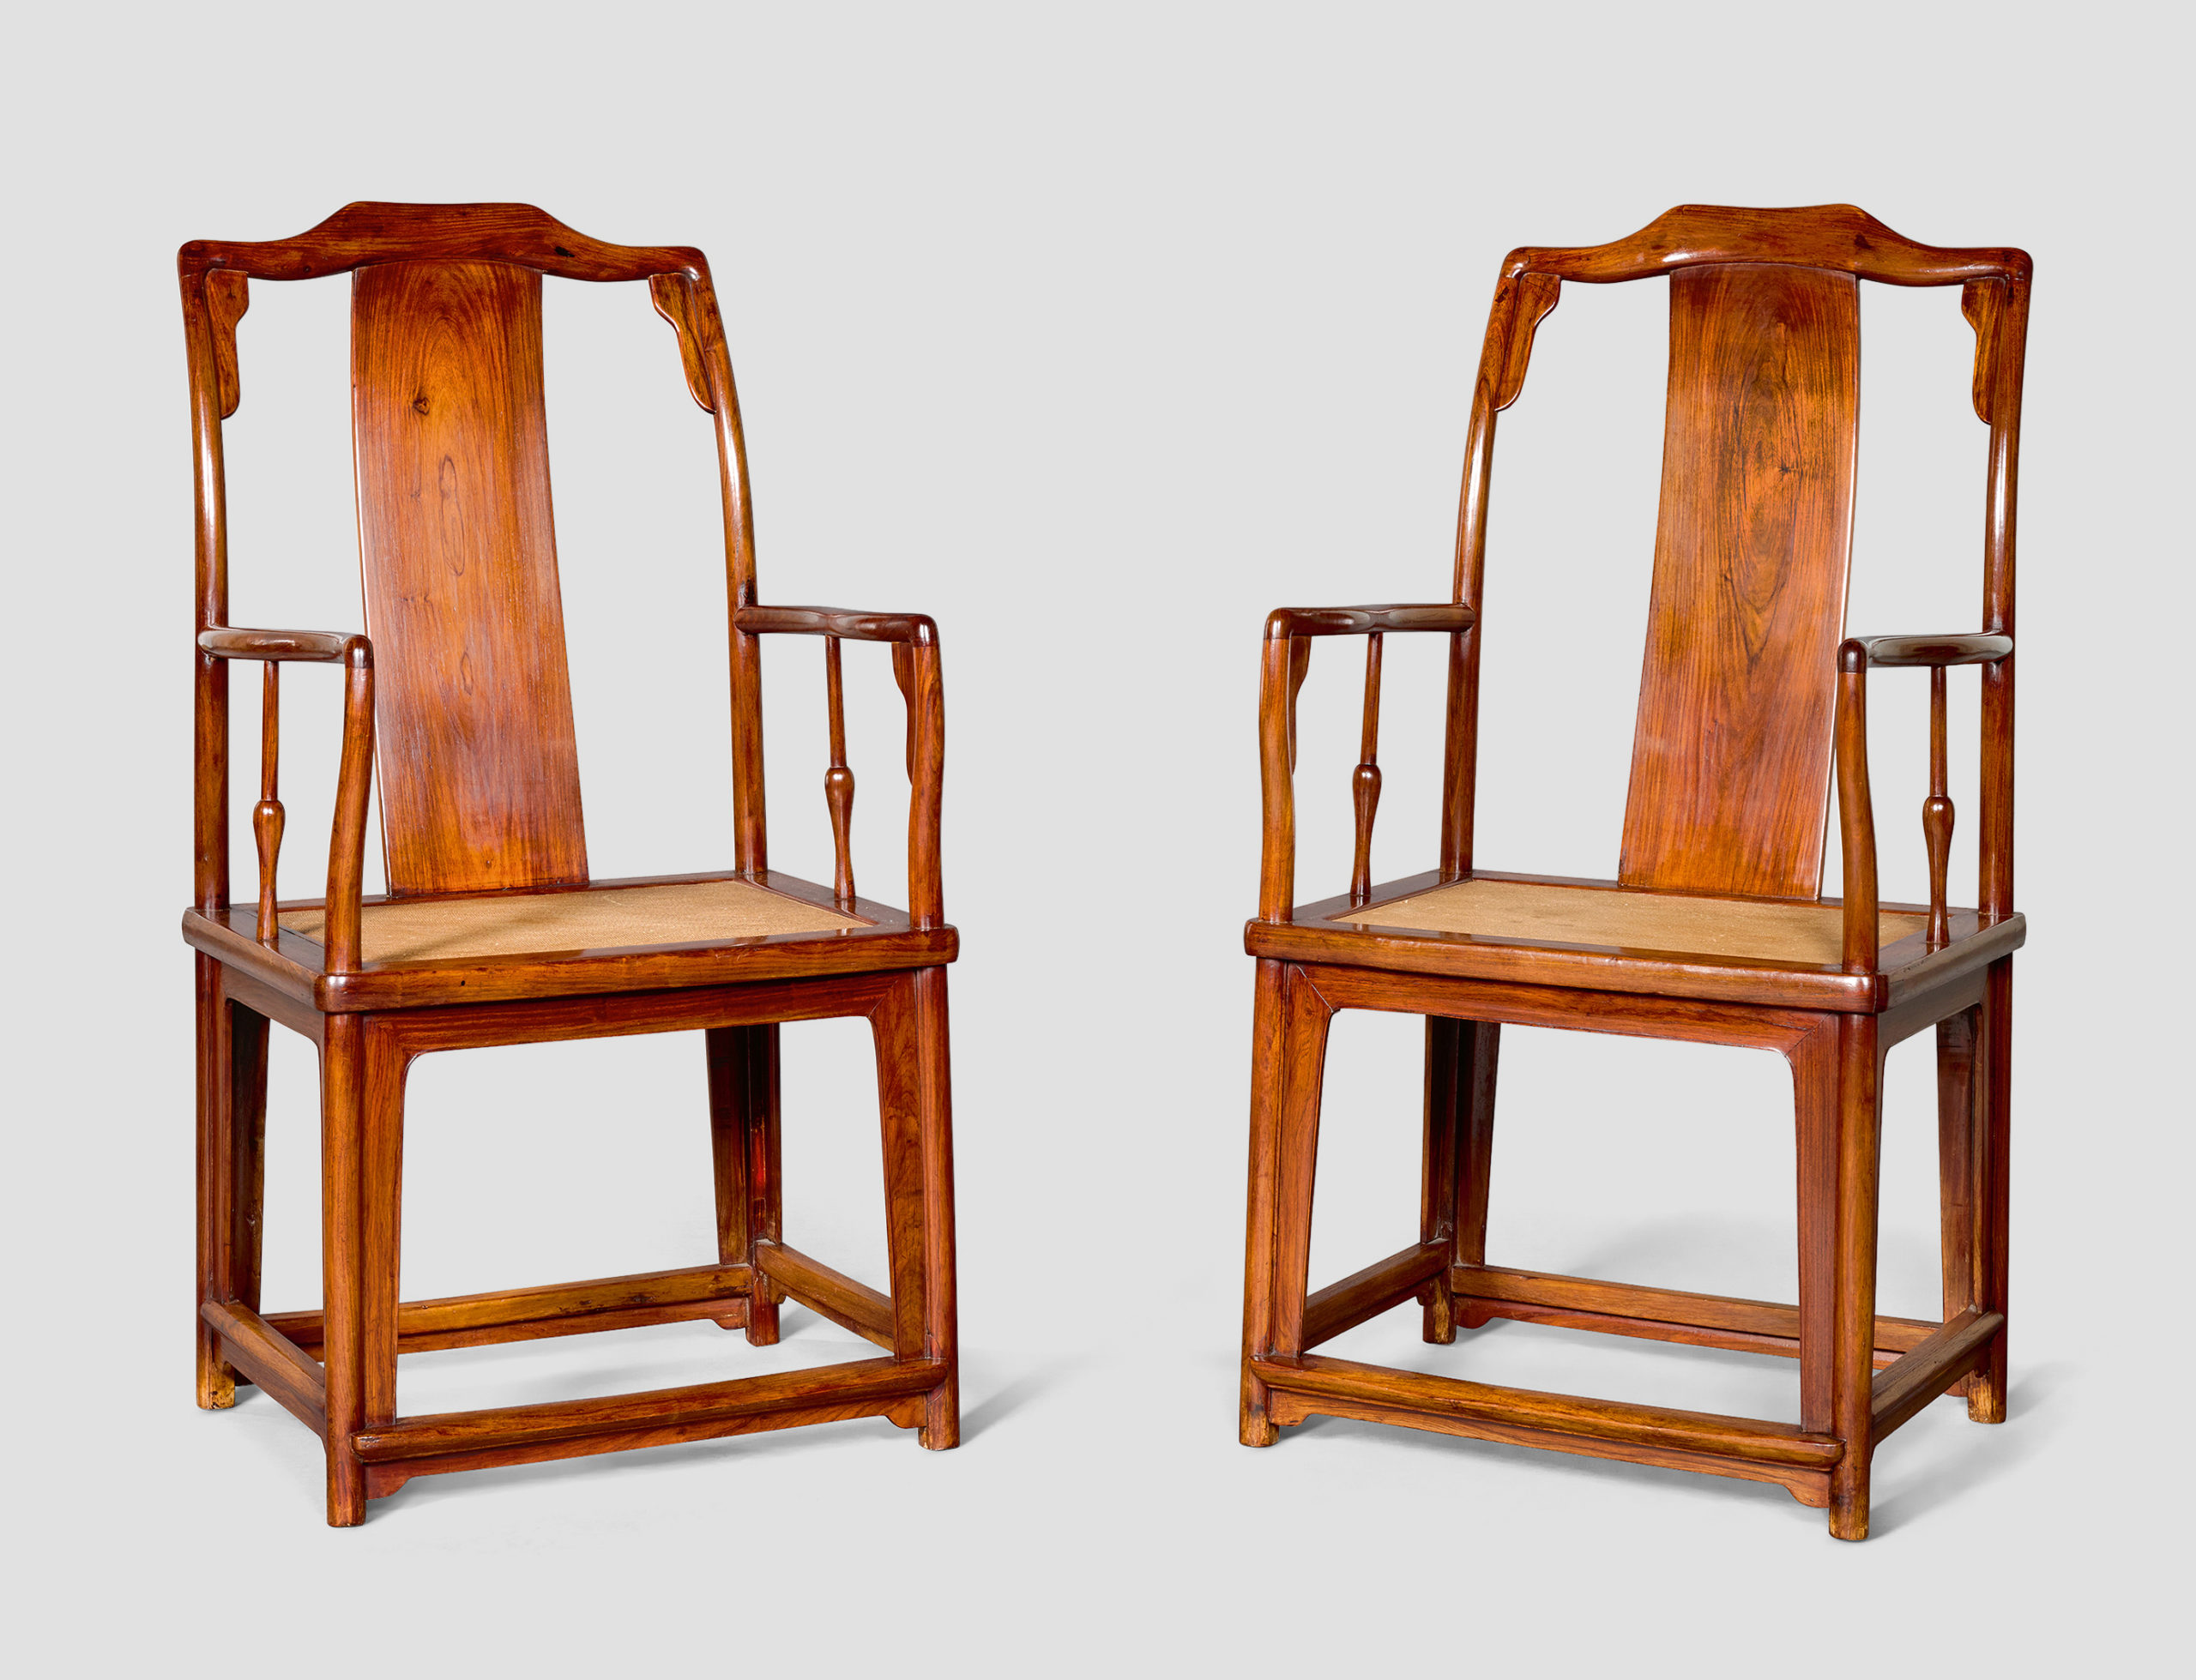 A PAIR OF LARGE HUANGHUALI CONTINUOUS YOKEBACK ARMCHAIRS, NANGUANMAOYI, LATE MING DYNASTY, 120 by 62 by 48 cm